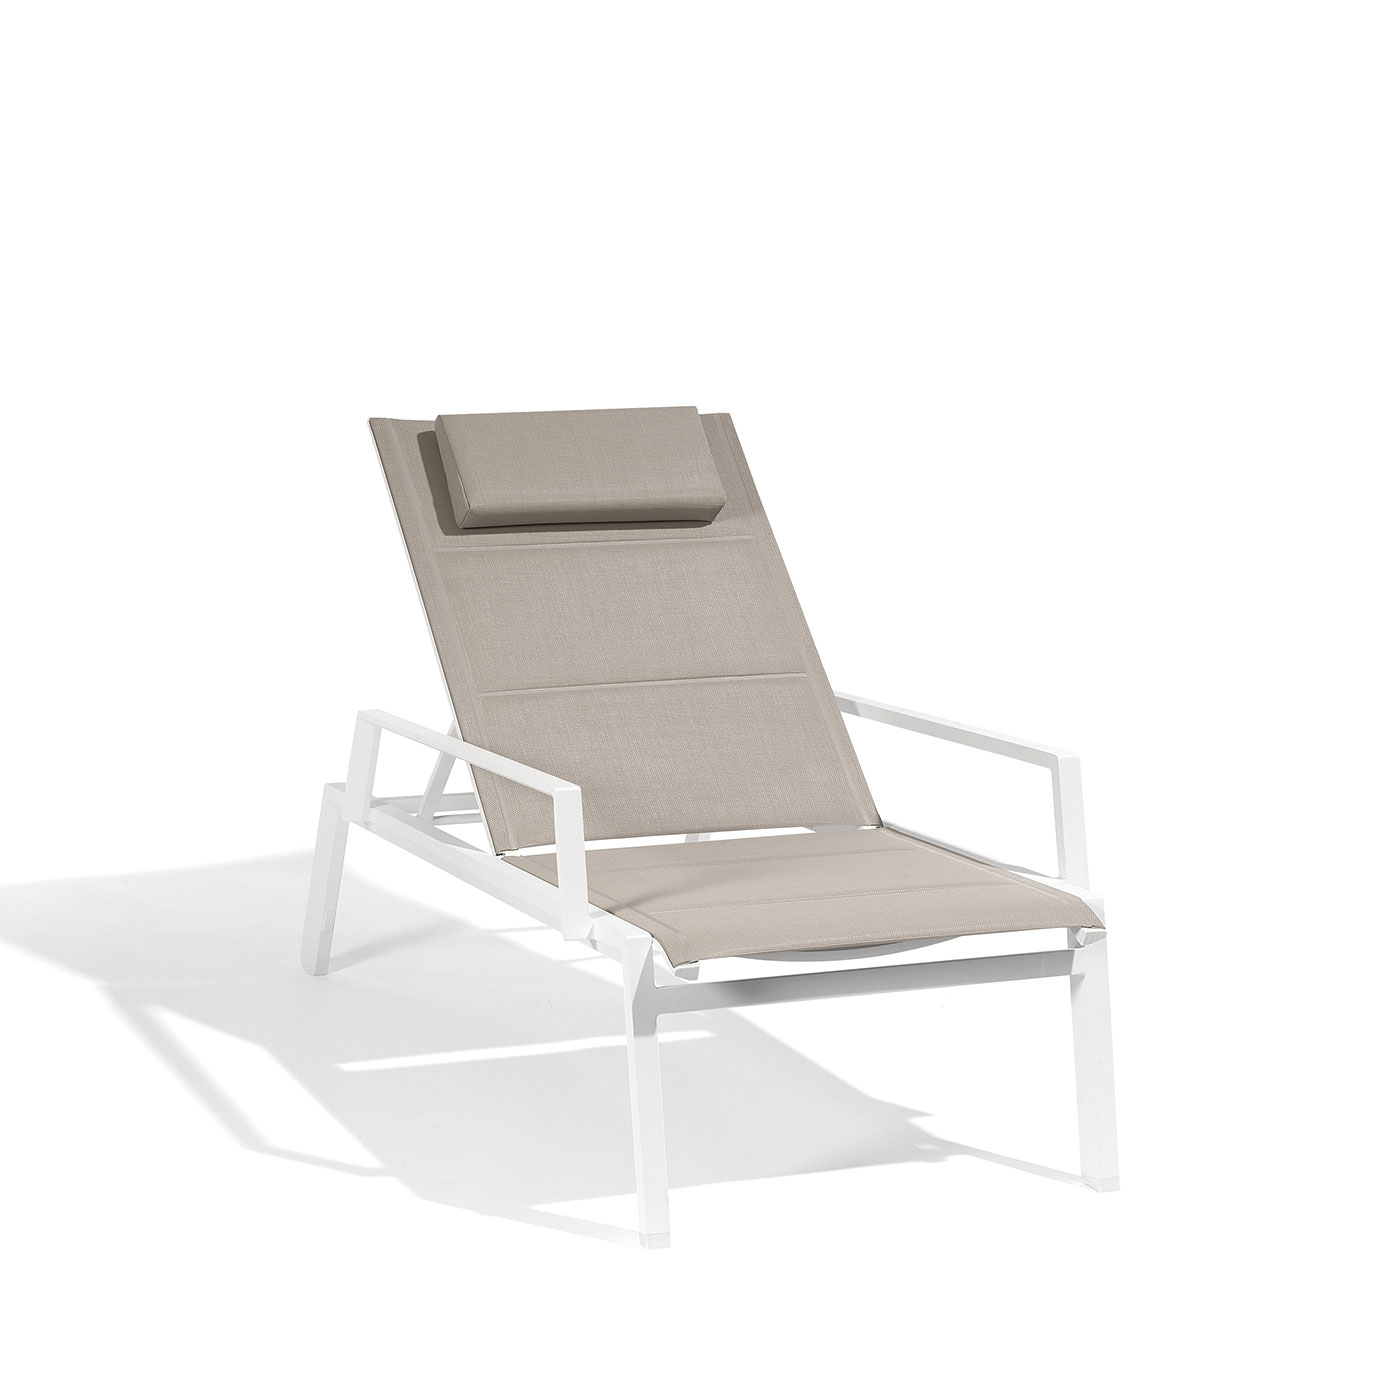 Selecta Beach Chair